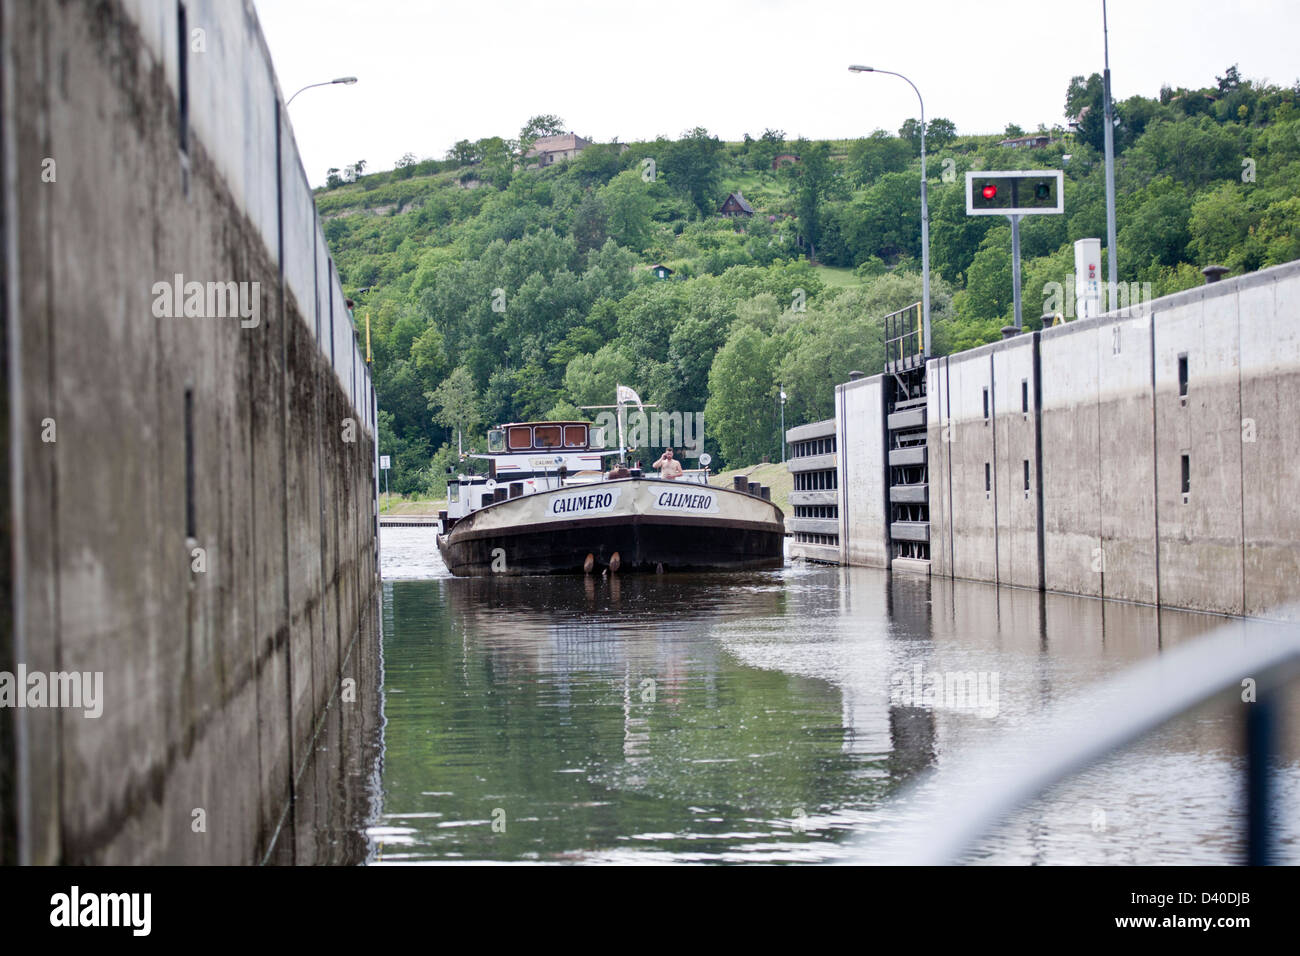 A barge entering the lock on the river Vltava = Moldau in Melnic, Tjeckia - Stock Image